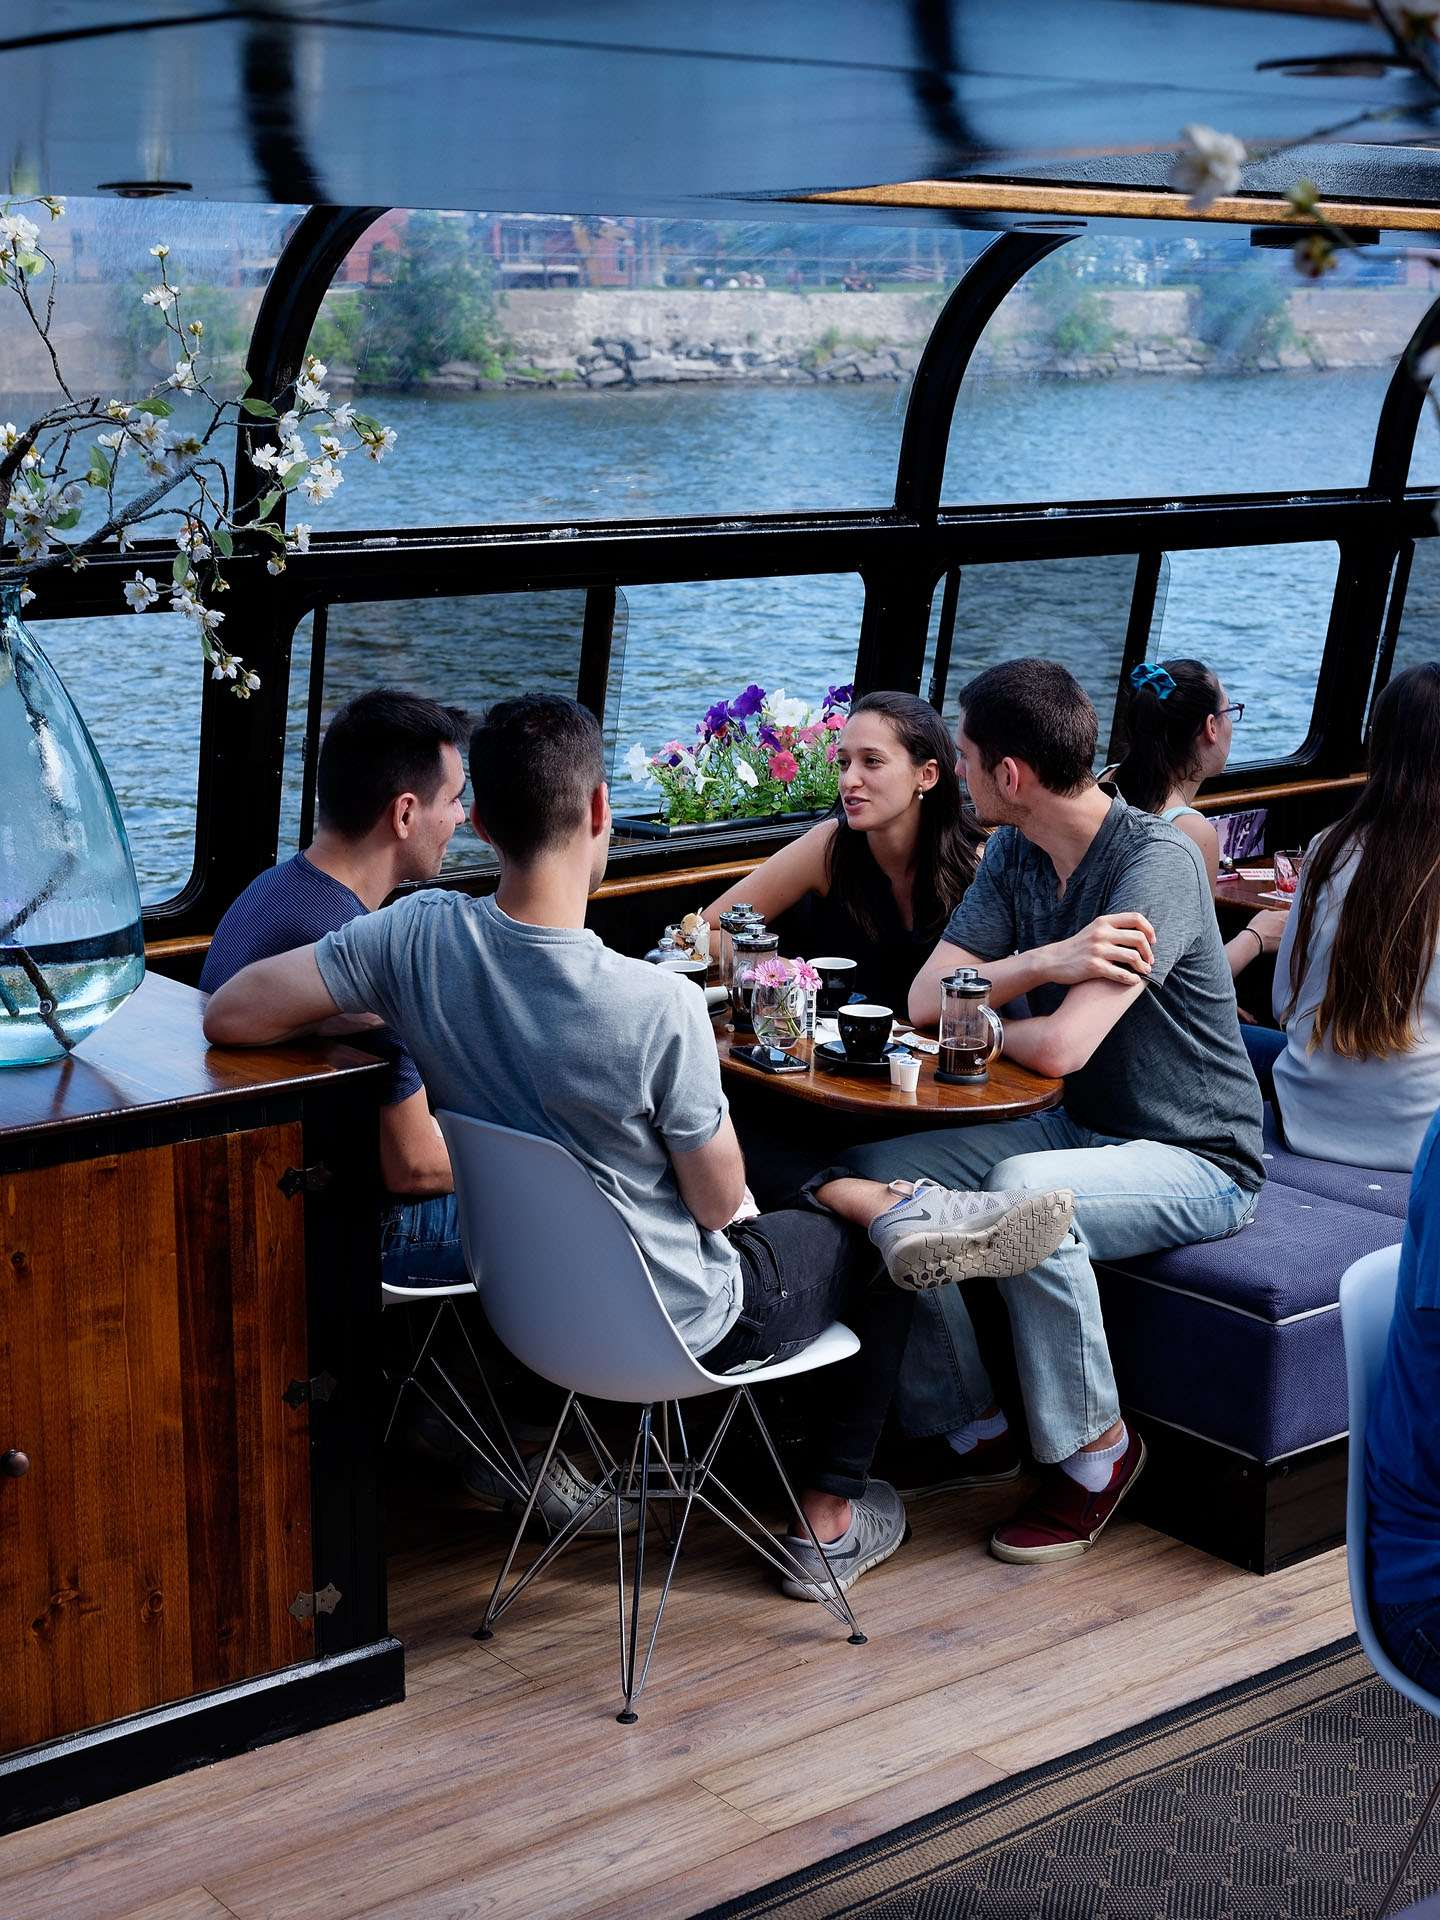 group of four sitting inside cafe inside of a river boat talking with cups of coffee in front of them photographed by Guillaume Simoneau as part of Off Duty Montreal series for The Wall Street Journal magazine